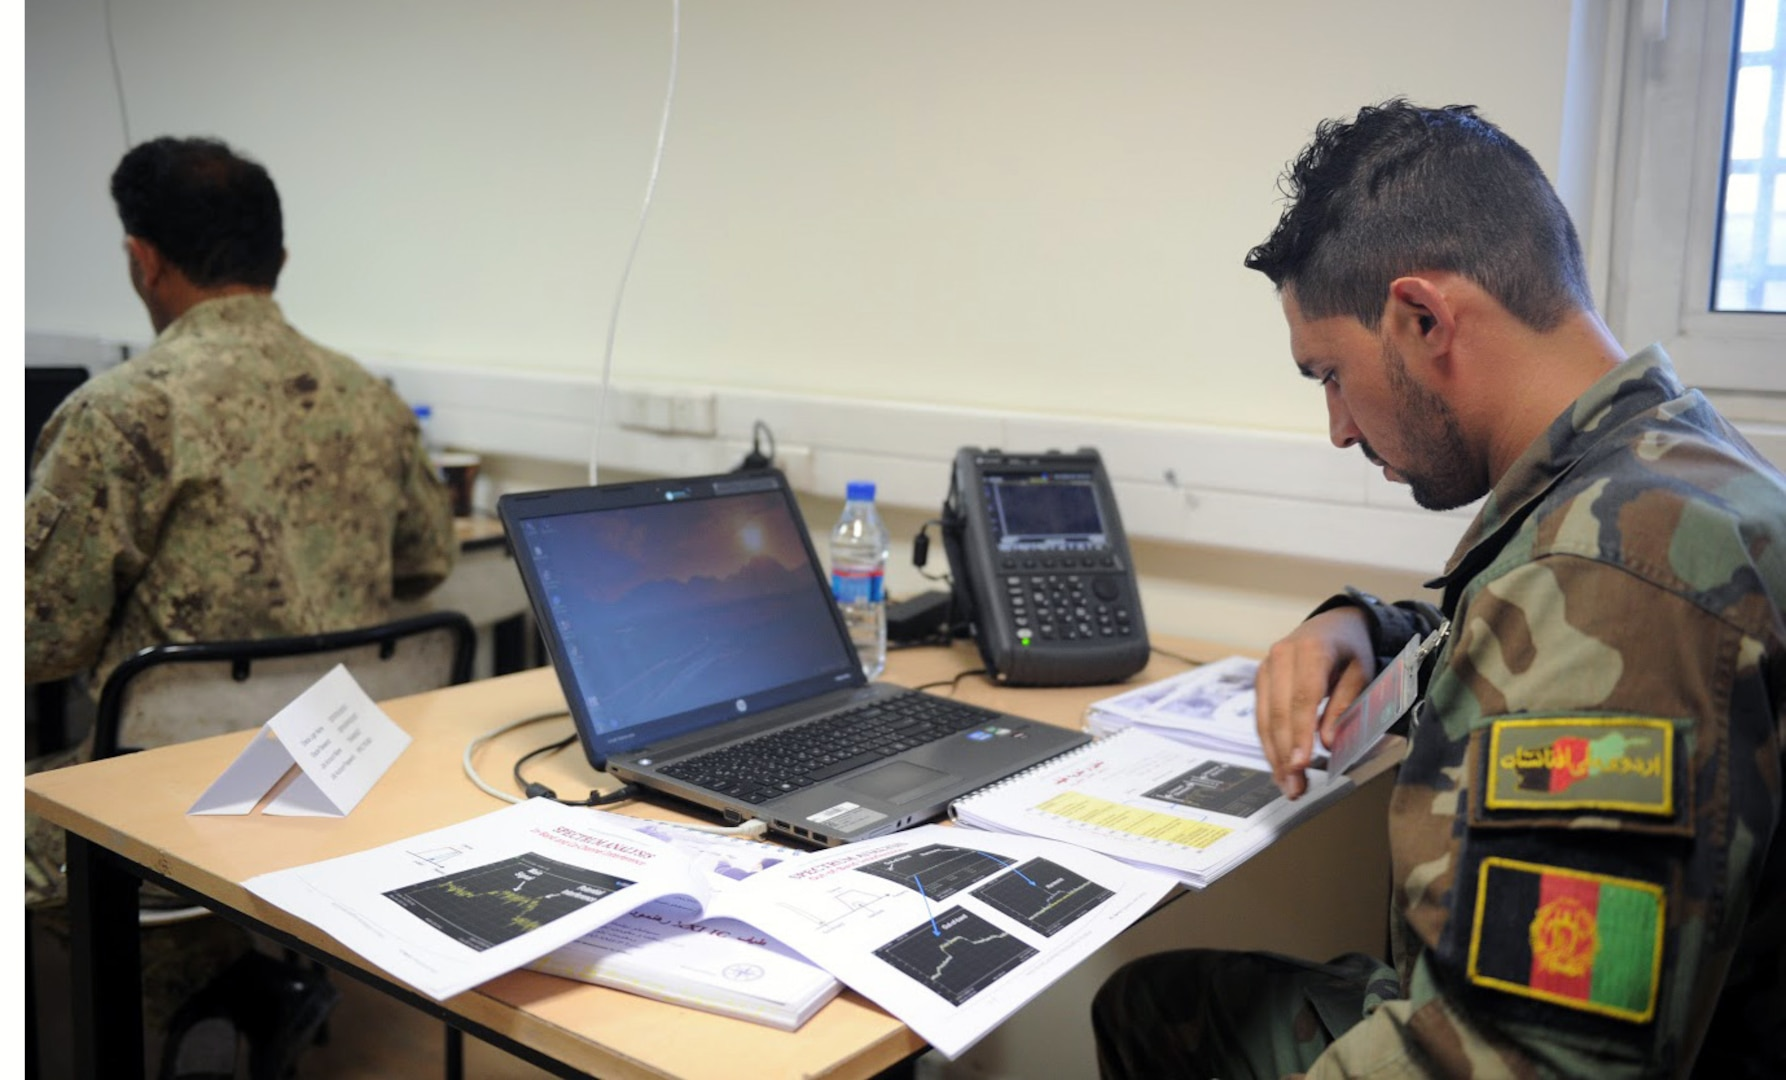 KABUL, Afghanistan (June 7, 2017) —1st Lt. Ahmad Shoaib Nabizada, honorary graduate, looks at his notes during the Spectrum Management class. The Afghan National Defense and Security Forces are to integrate its newest graduates in communication operations. These soldiers will be responsible for generating and ensuring accurate radio frequency signals, essential for combat operations, rescue missions and logistic support. (U.S. Navy photo by Lt. j.g. Egdanis Torres Sierra, Resolute Support Public Affairs – Afghanistan)